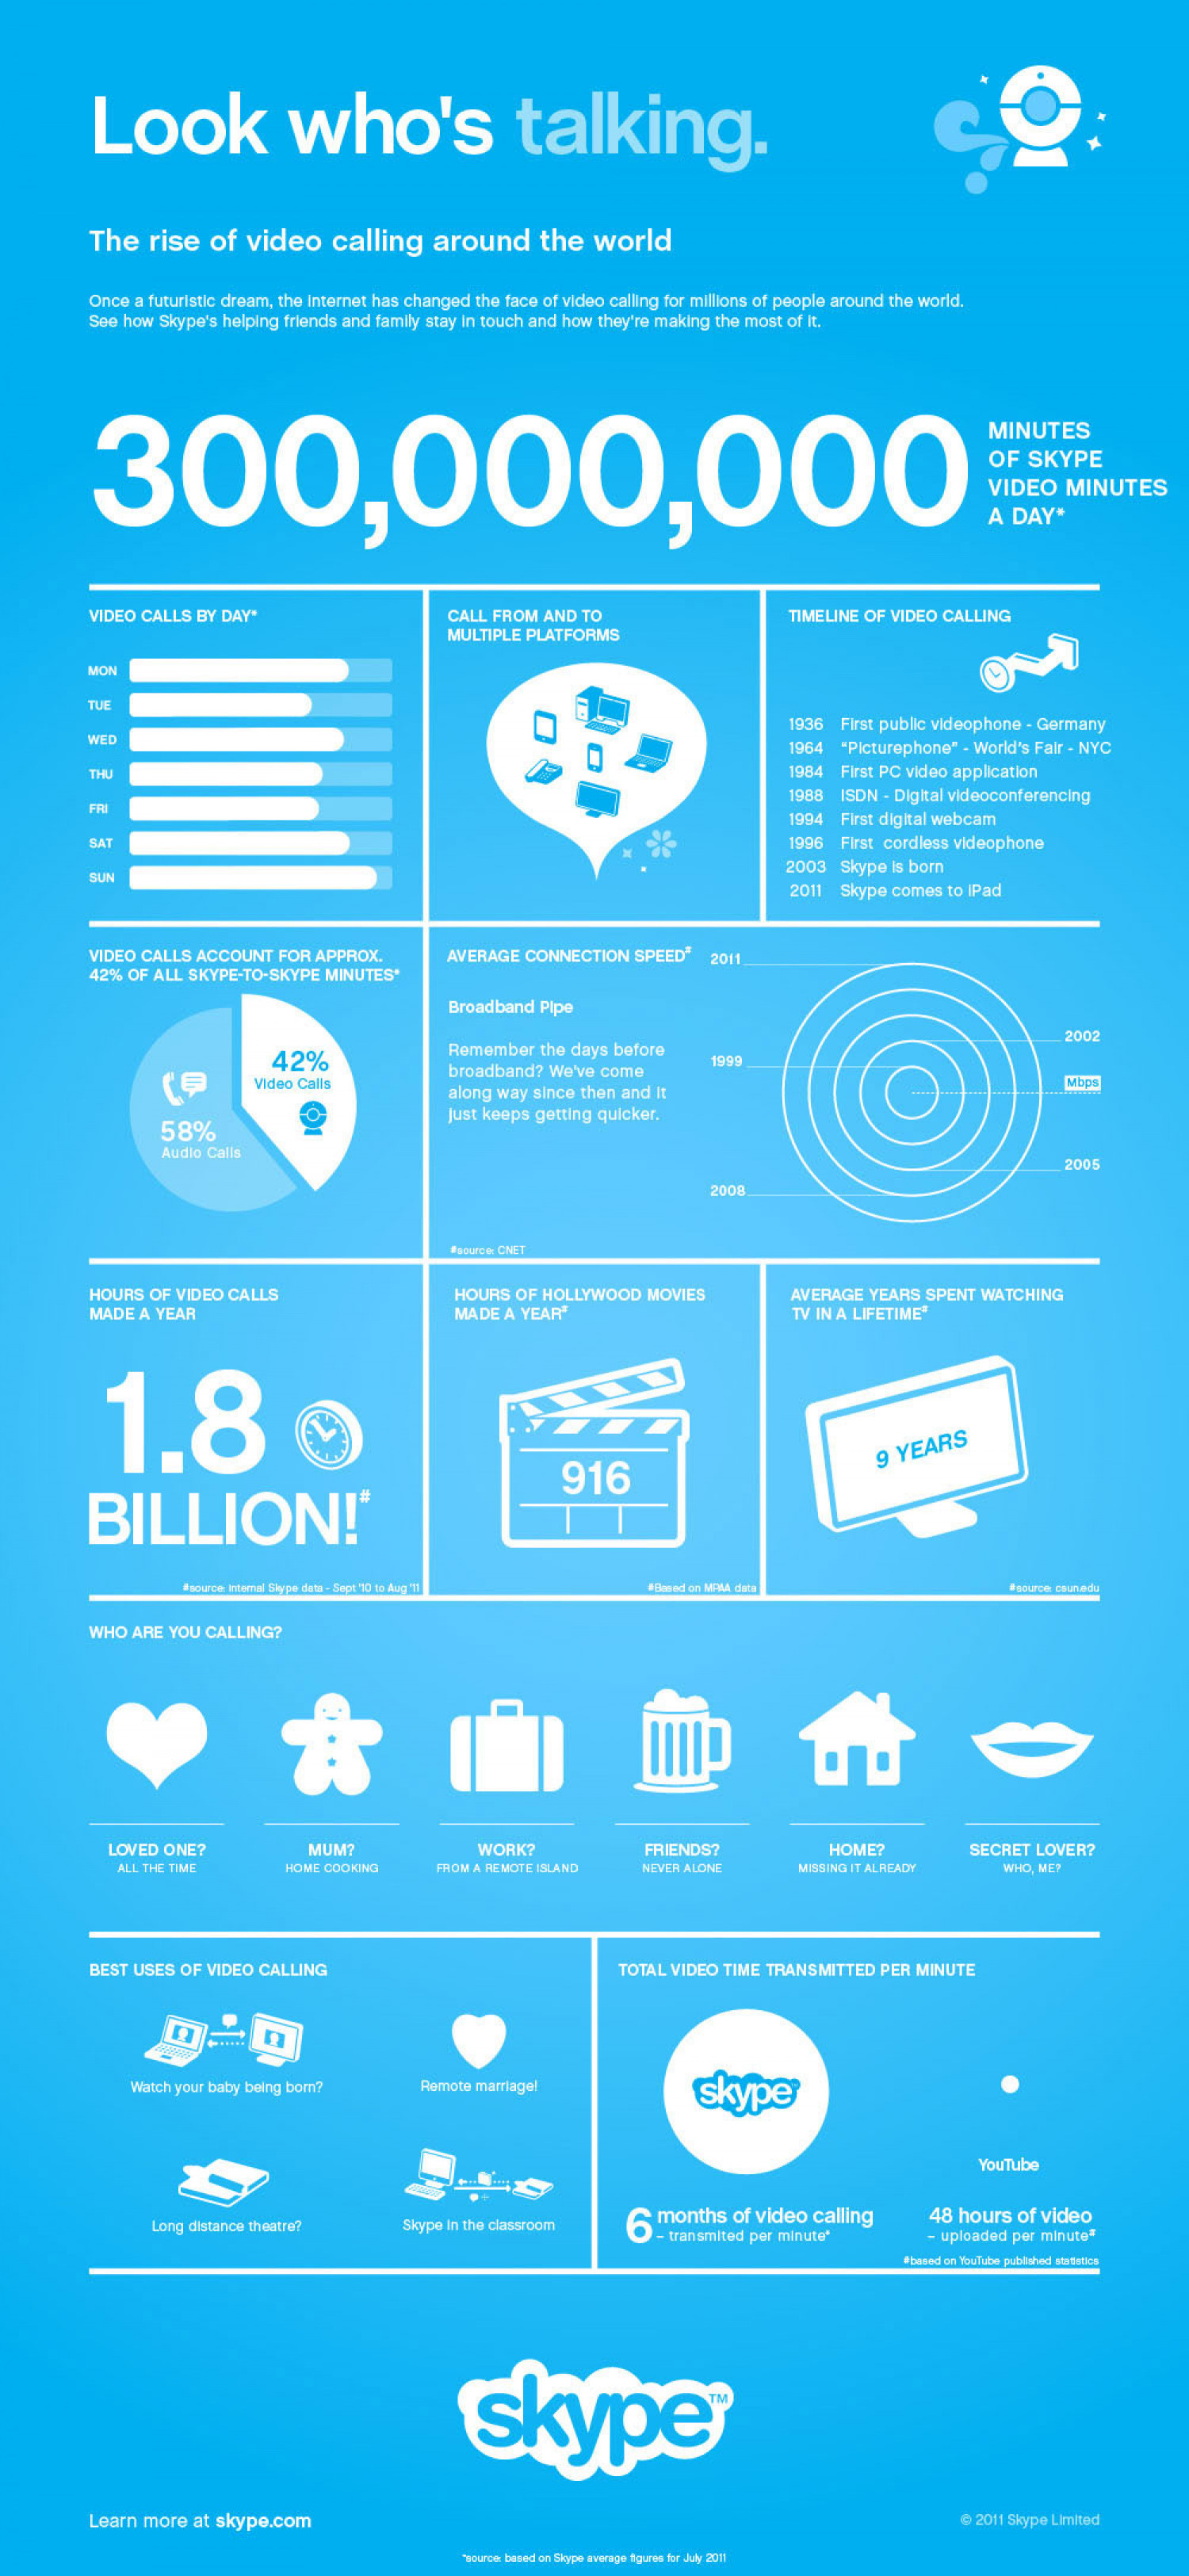 Microsoft Officially Welcomes Skype Infographic